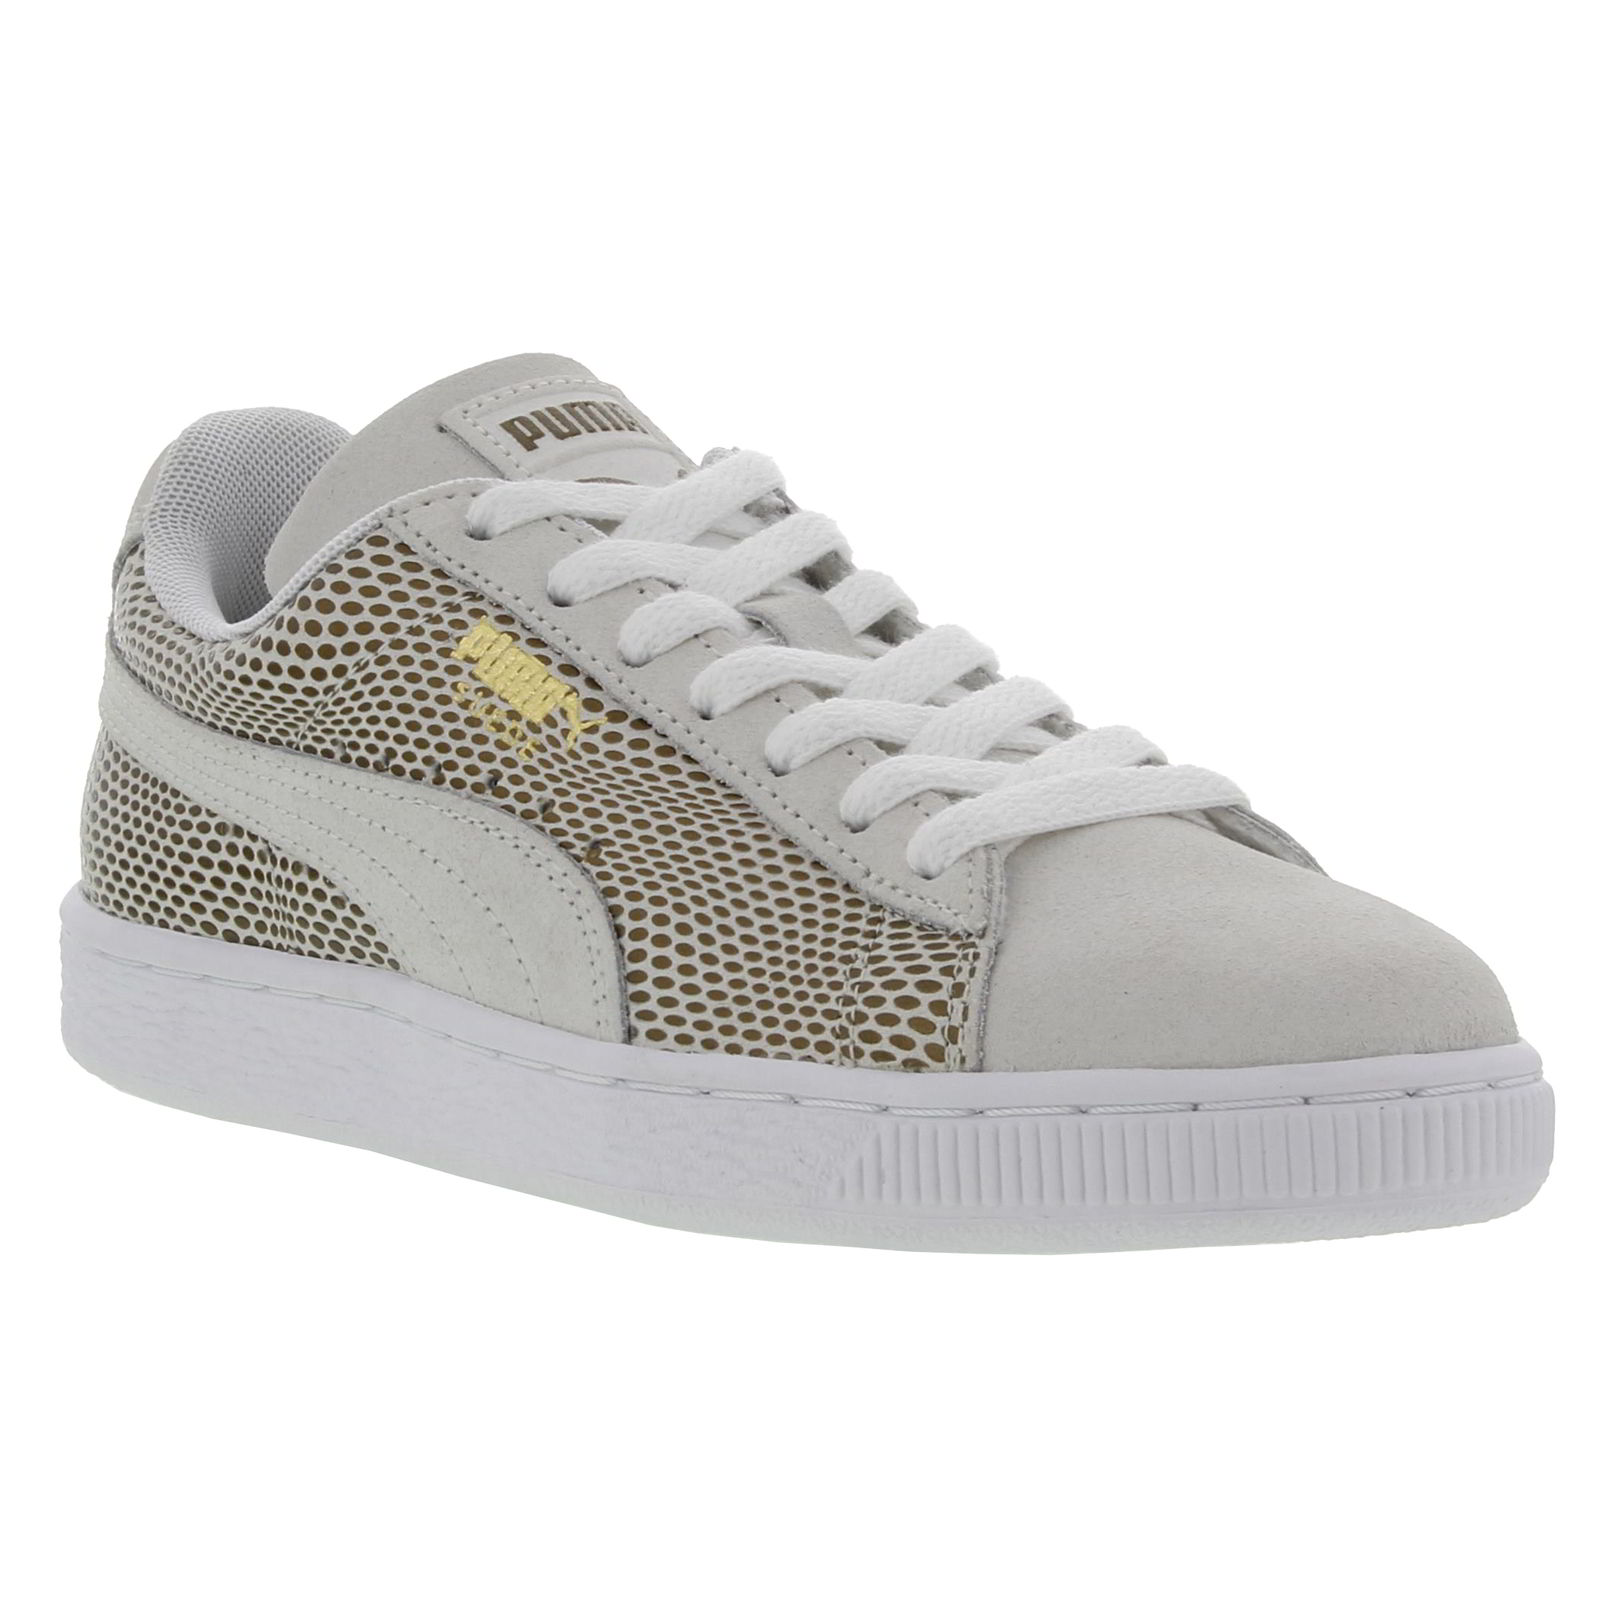 premium selection cd8bf 59e0f Details about Puma Suede Classic Womens Ladies Suede Trainers Shoes Size UK  5-8